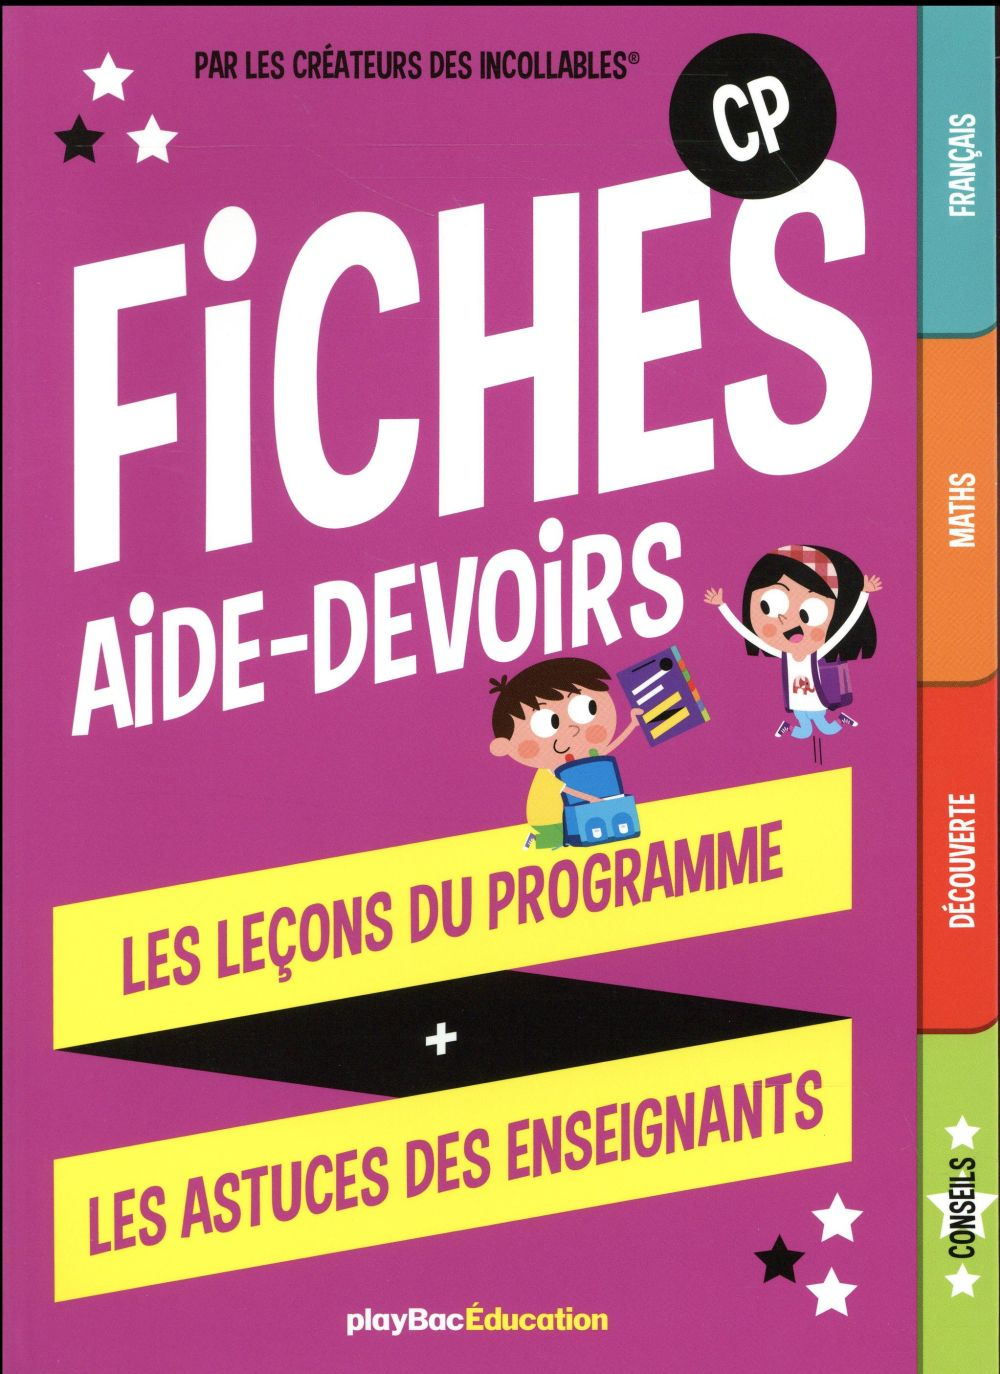 Fiches aide-devoirs, CP  Play Bac